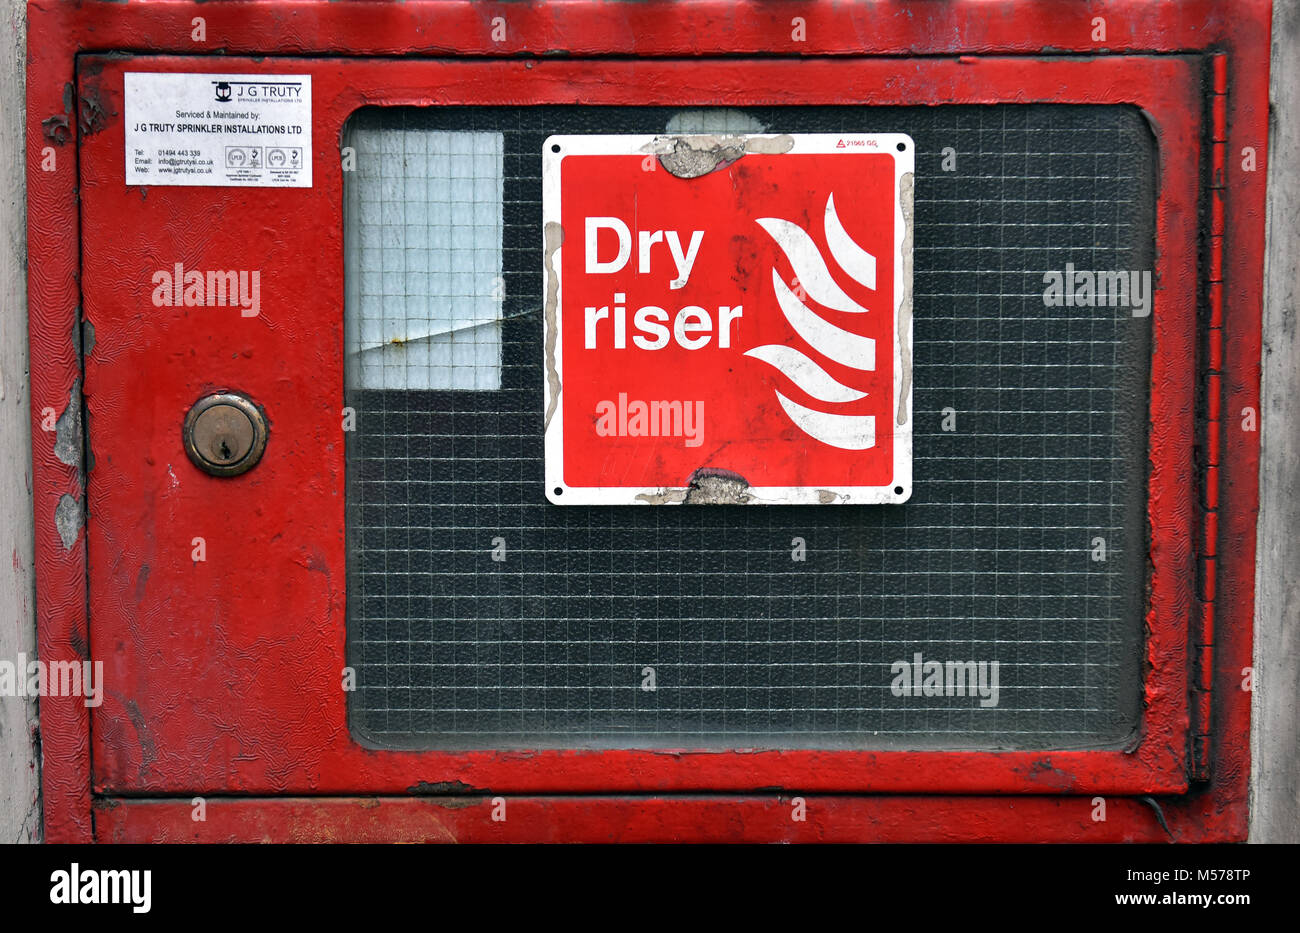 a dry riser cabinet access door on the outside of a london high rise block of flats. fire prevention firefighting - Stock Image